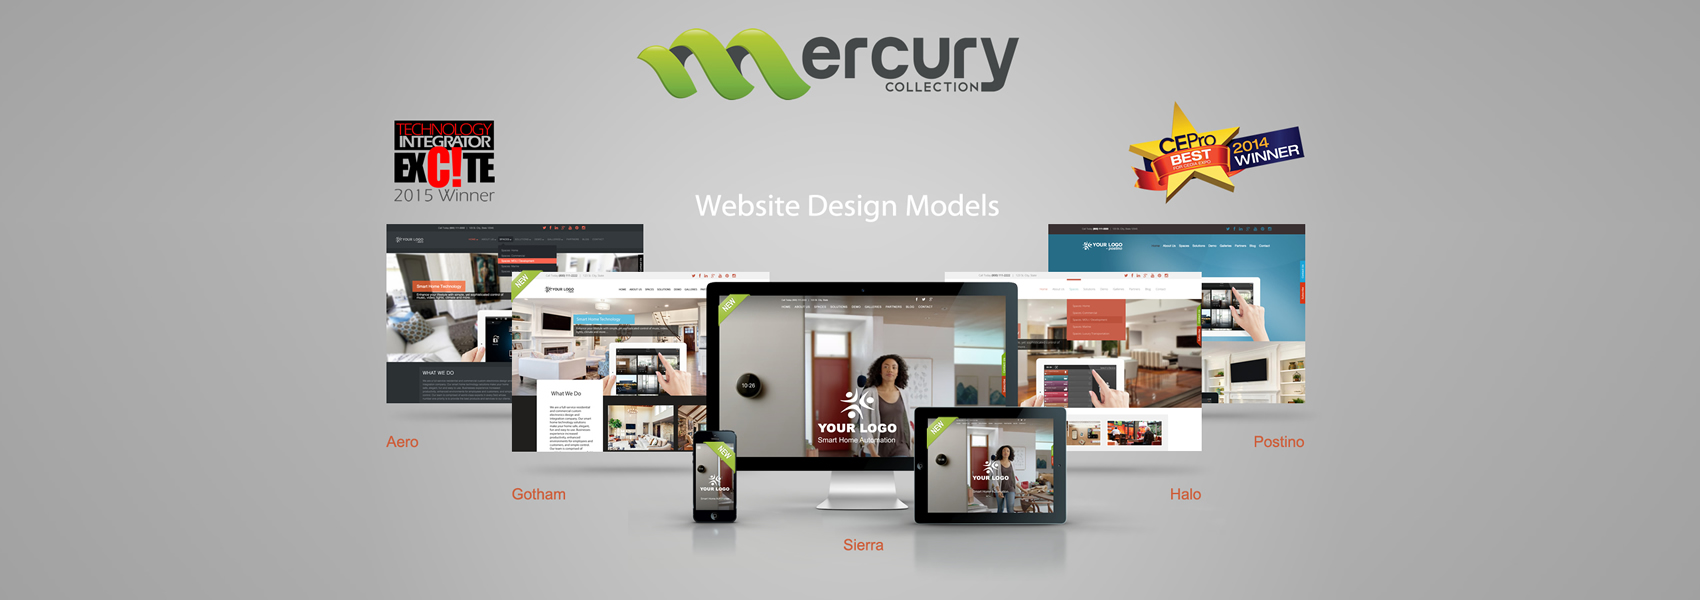 Mercury Design Models Showcase Five With Text Award